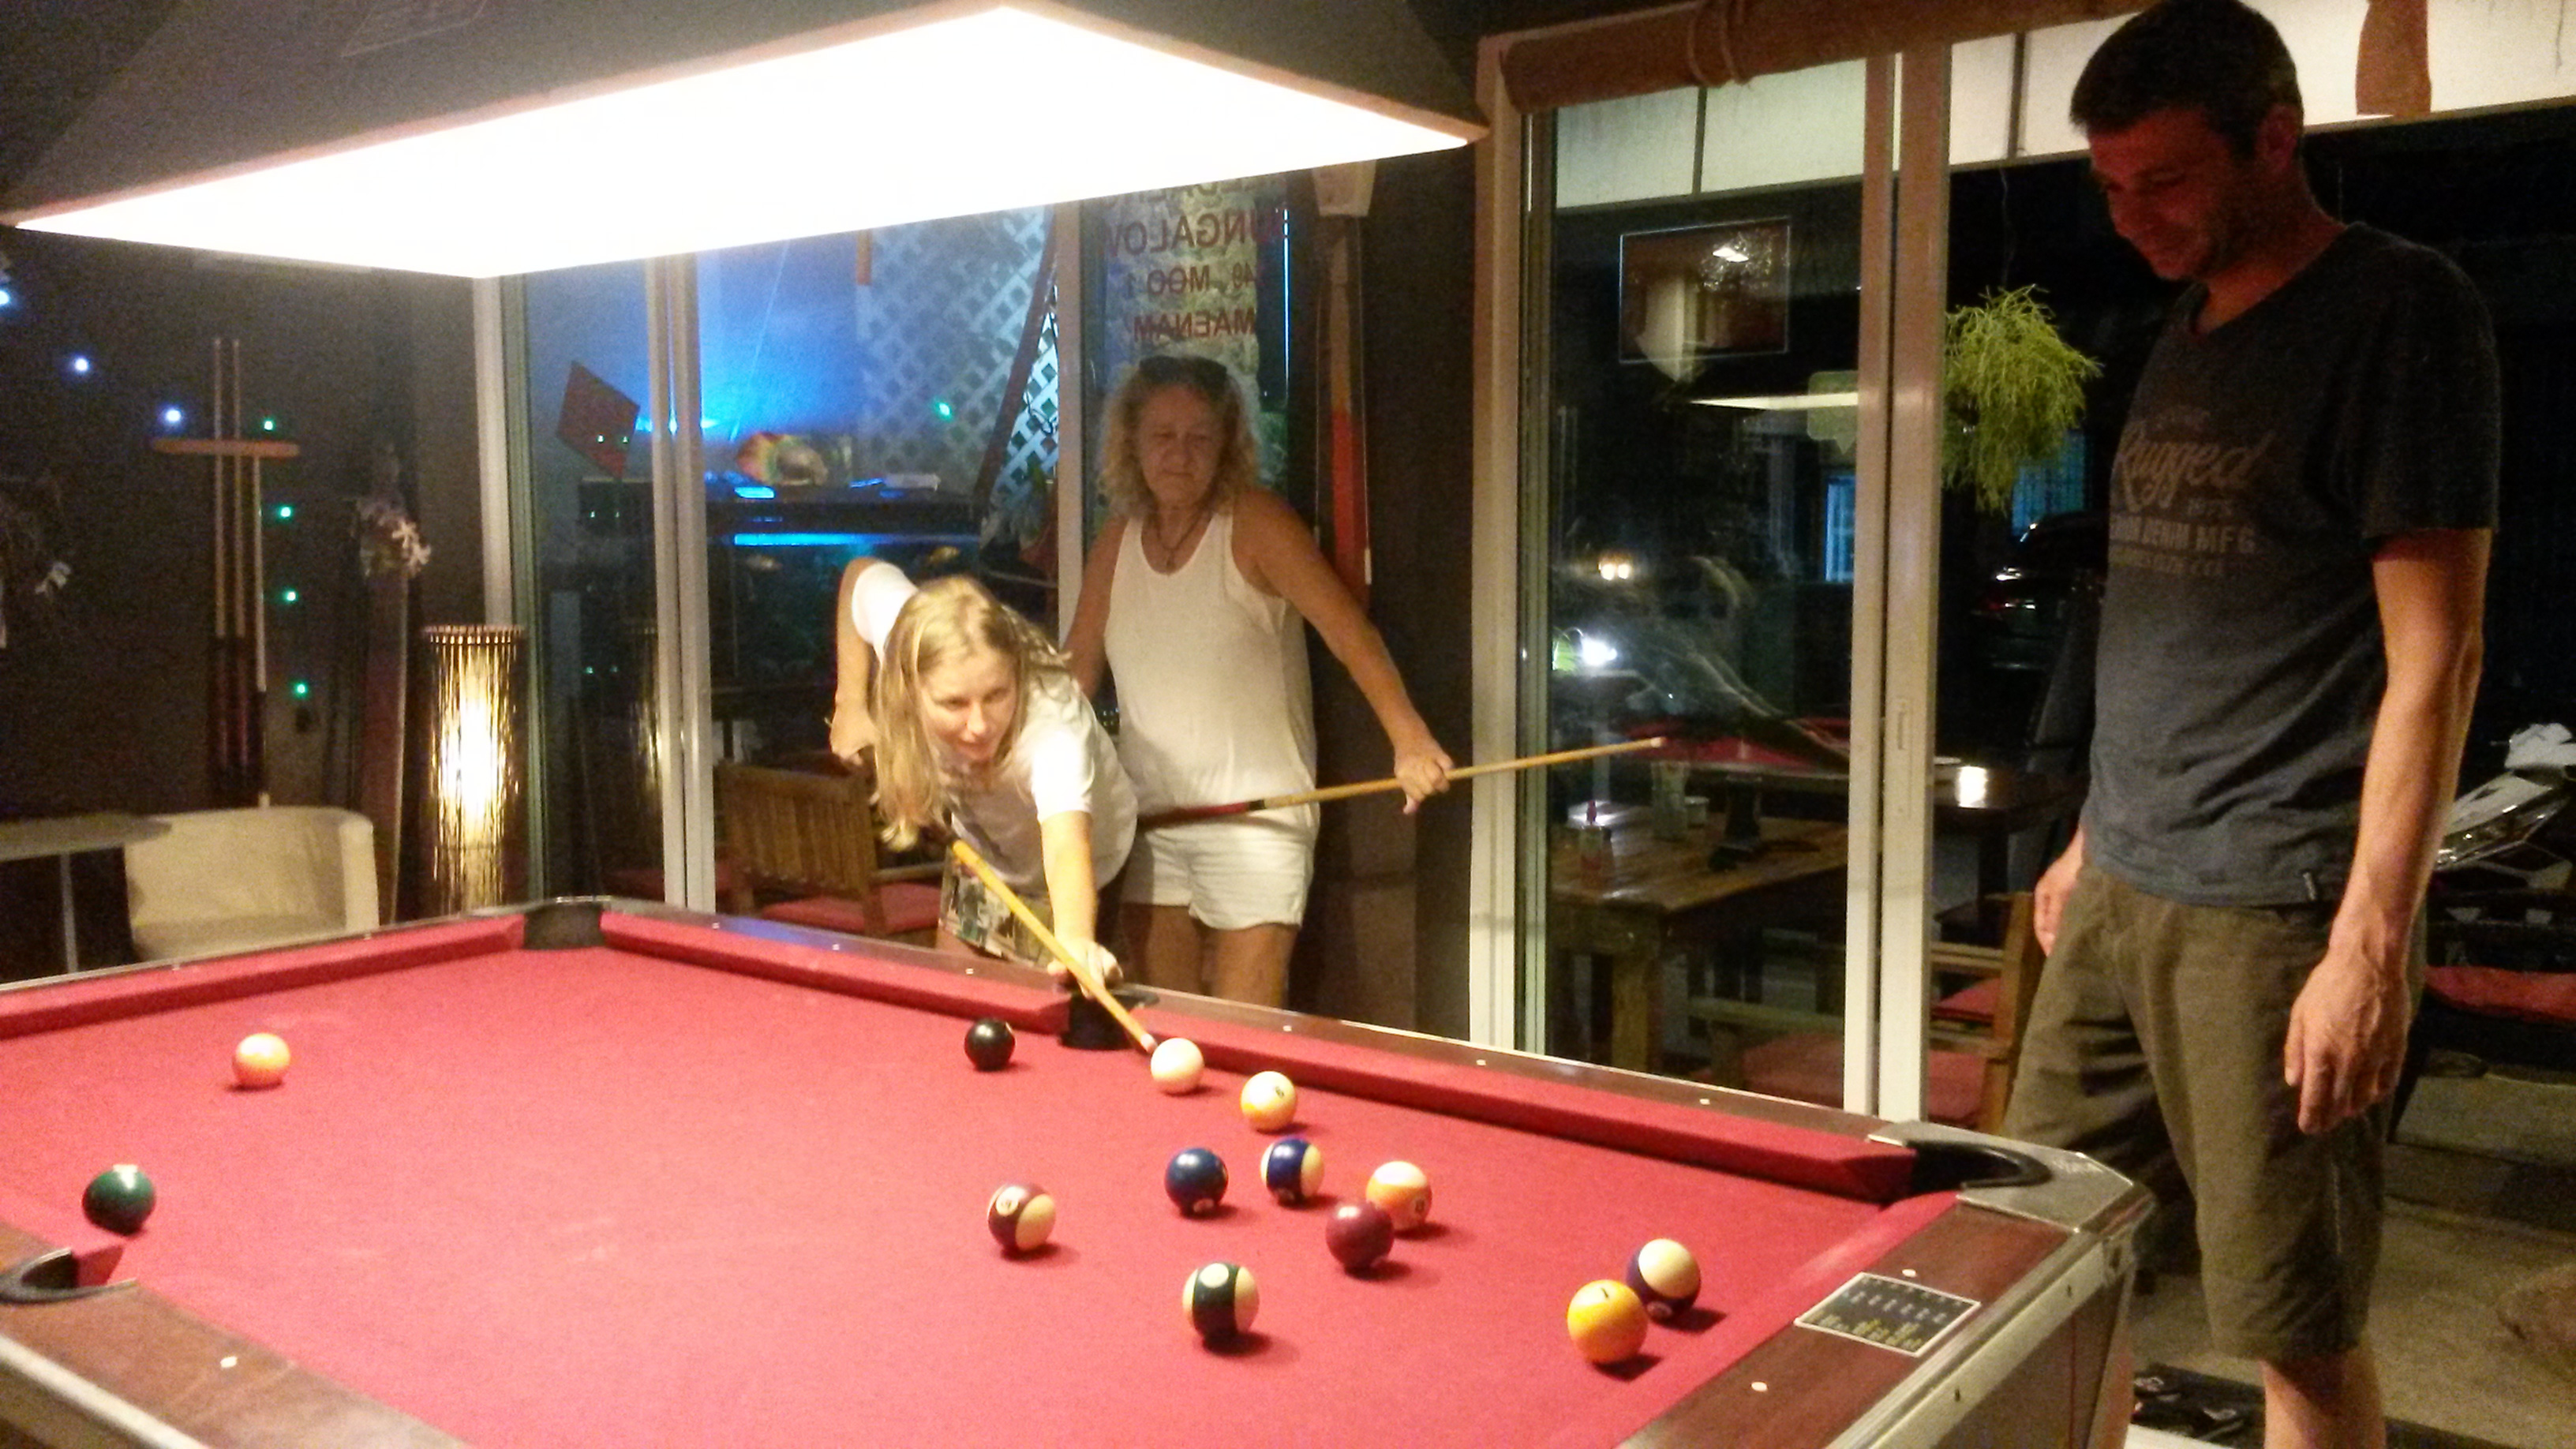 Delicous Snacks, With Thai Food And European, A Friendly Bar And Pool Table  Make This The Perfect Place To Meet Friends And Socialise With The Local ...